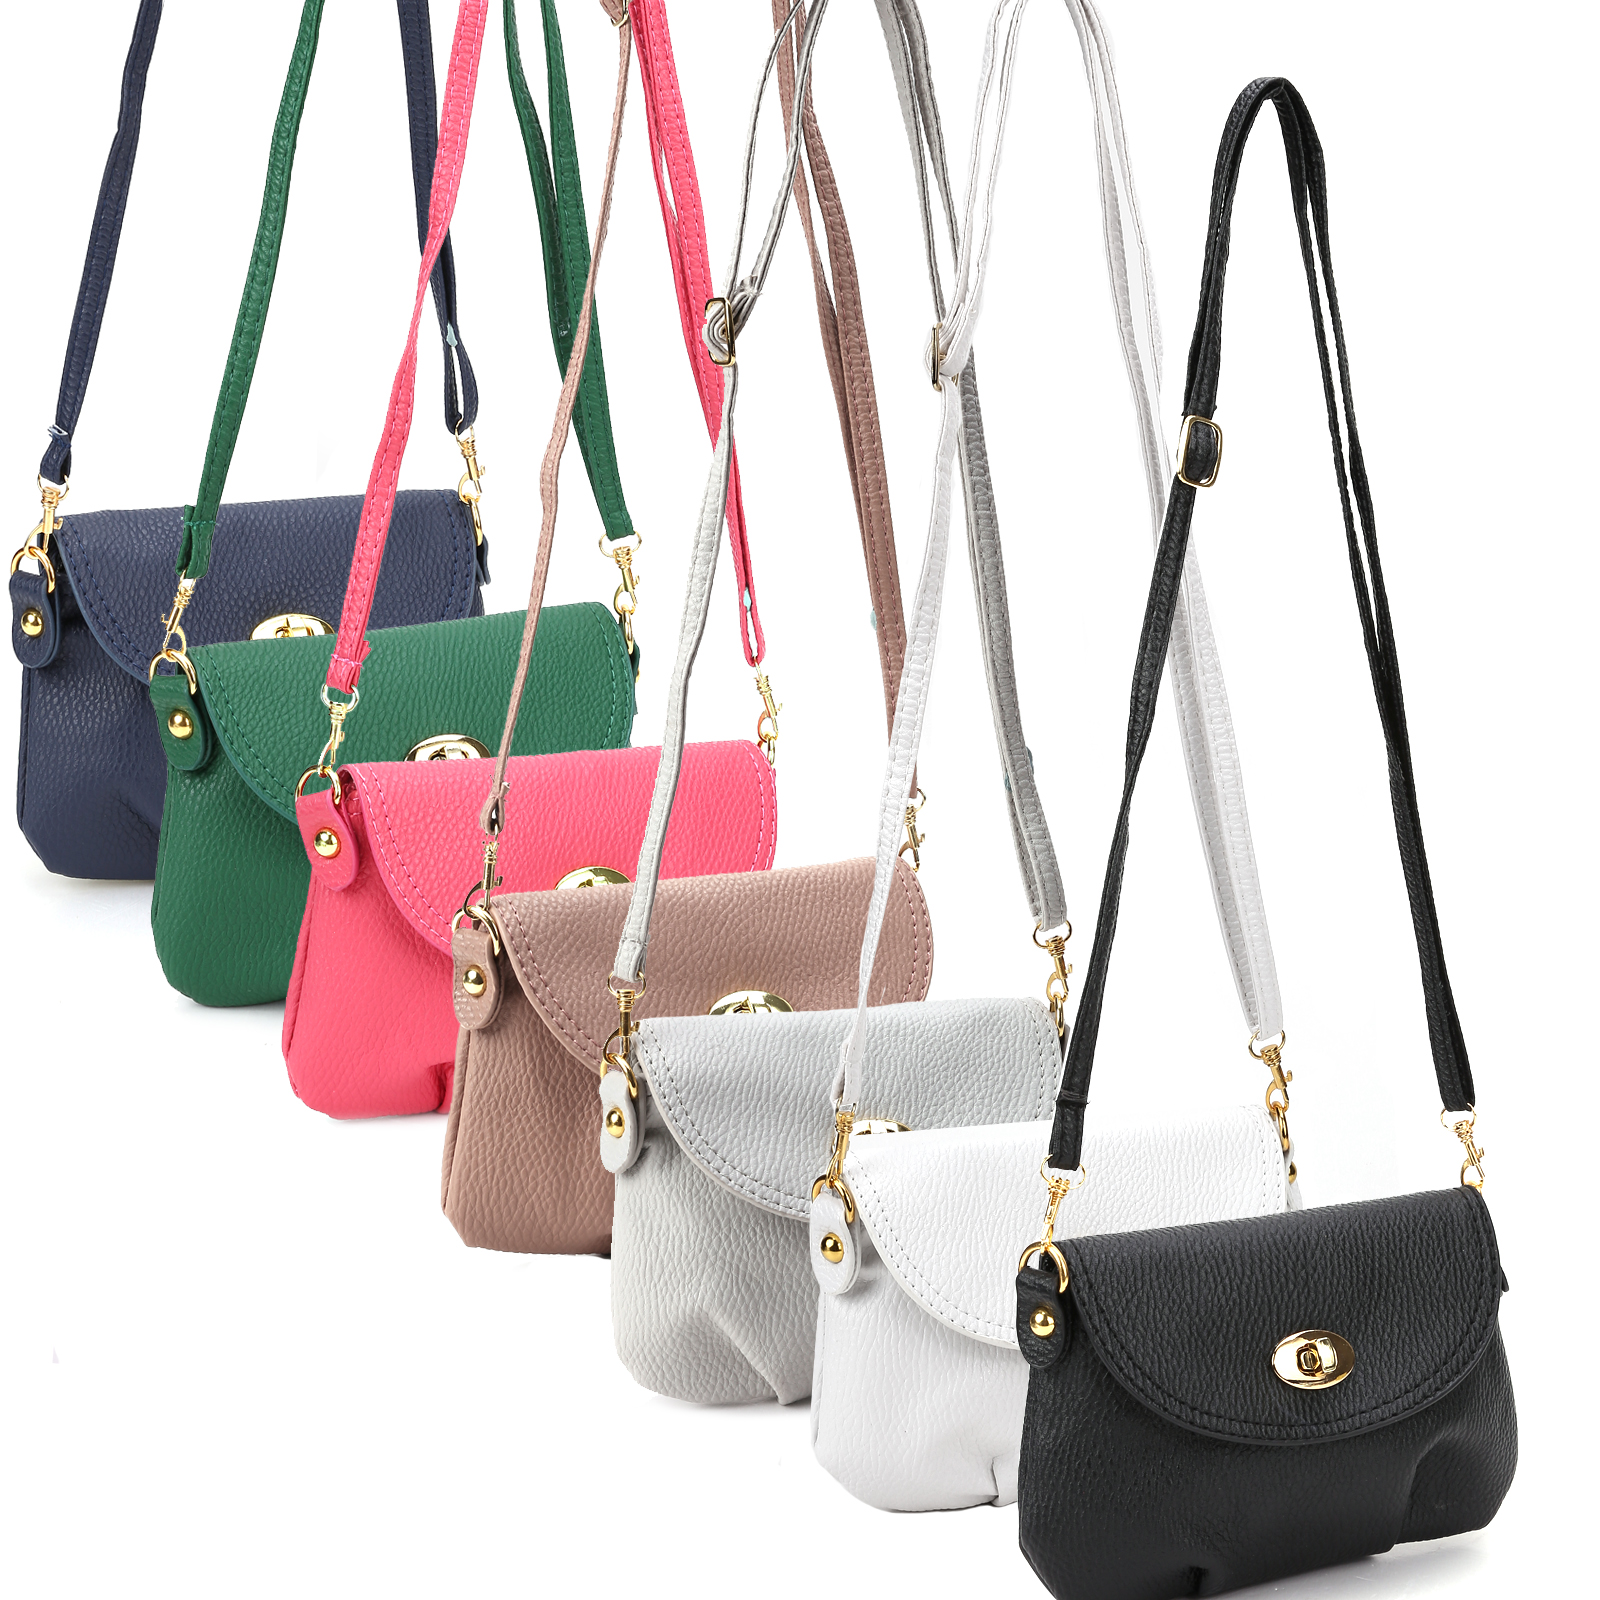 Ladies Small Satchel Leather Handbag Crossbody Shoulder Messenger Totes Bags 9f343002e230f